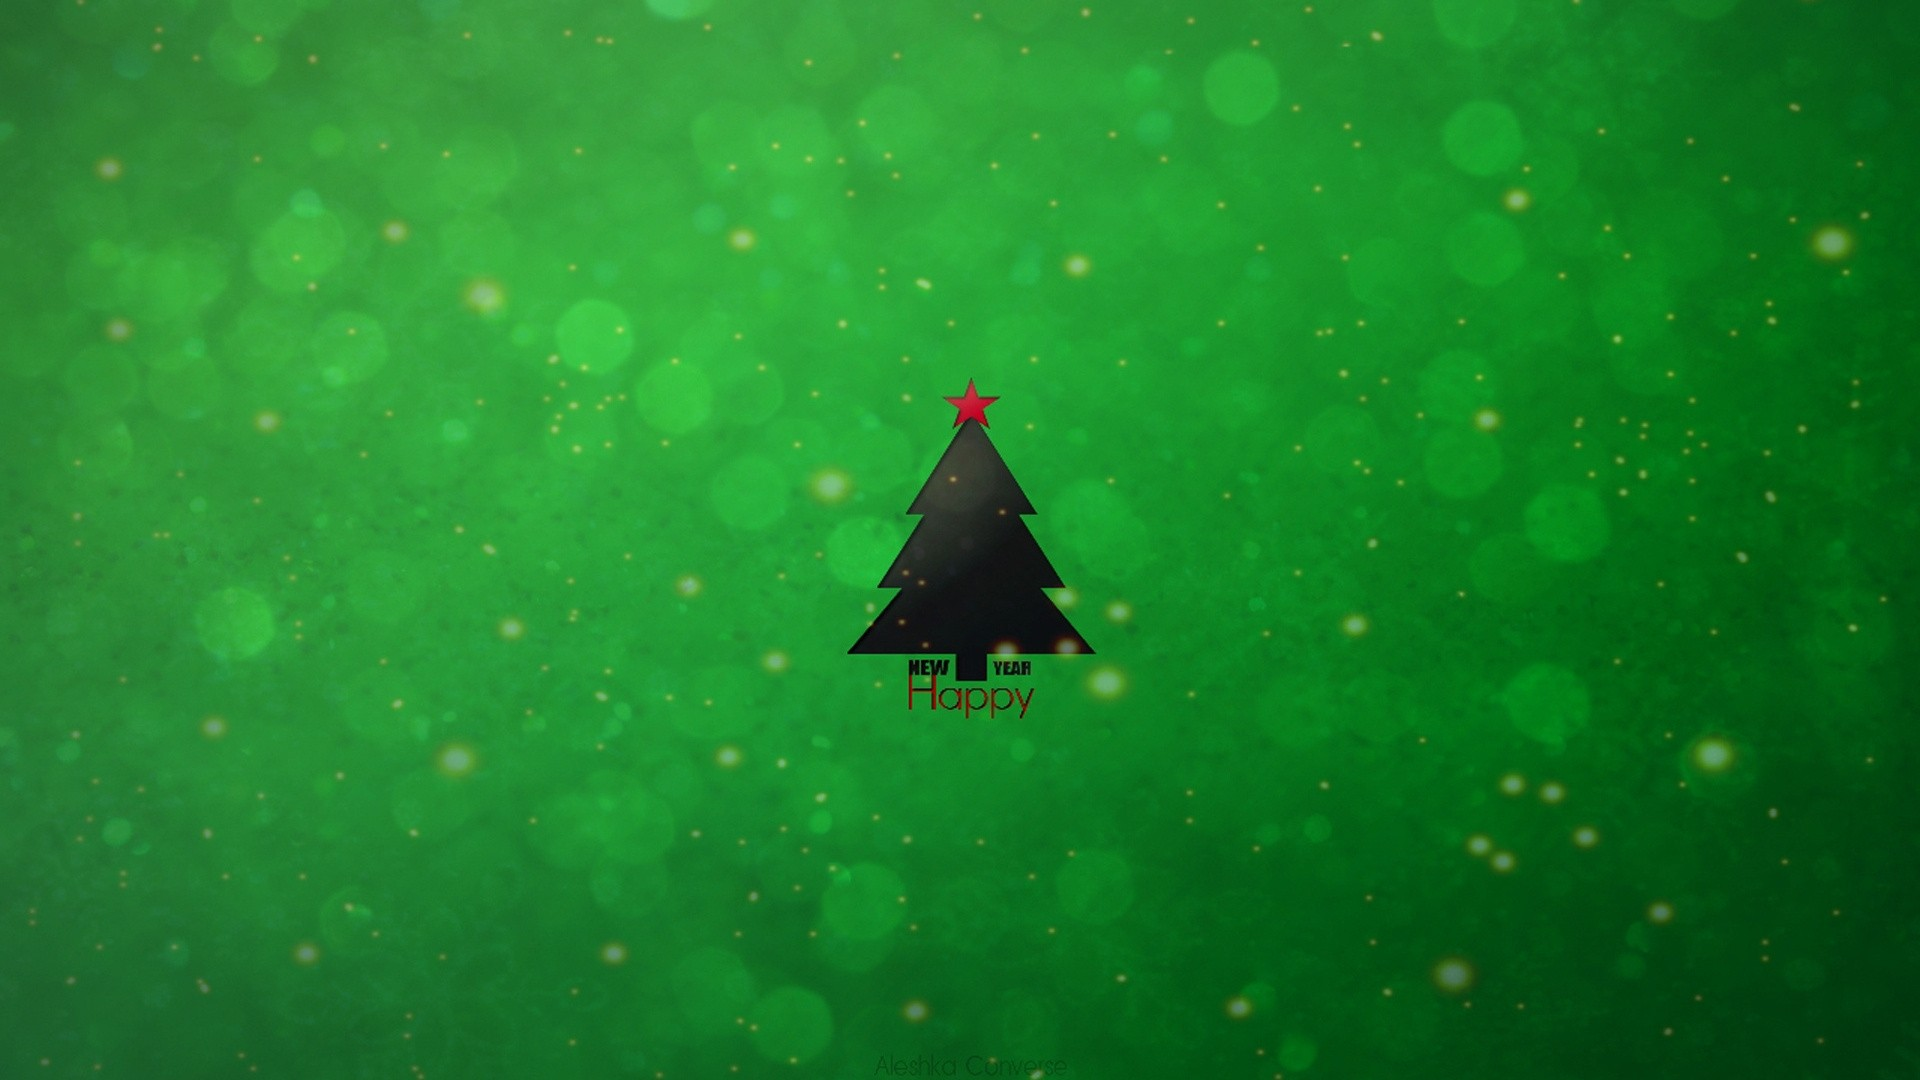 Minimalist Christmas Wallpaper Free Download